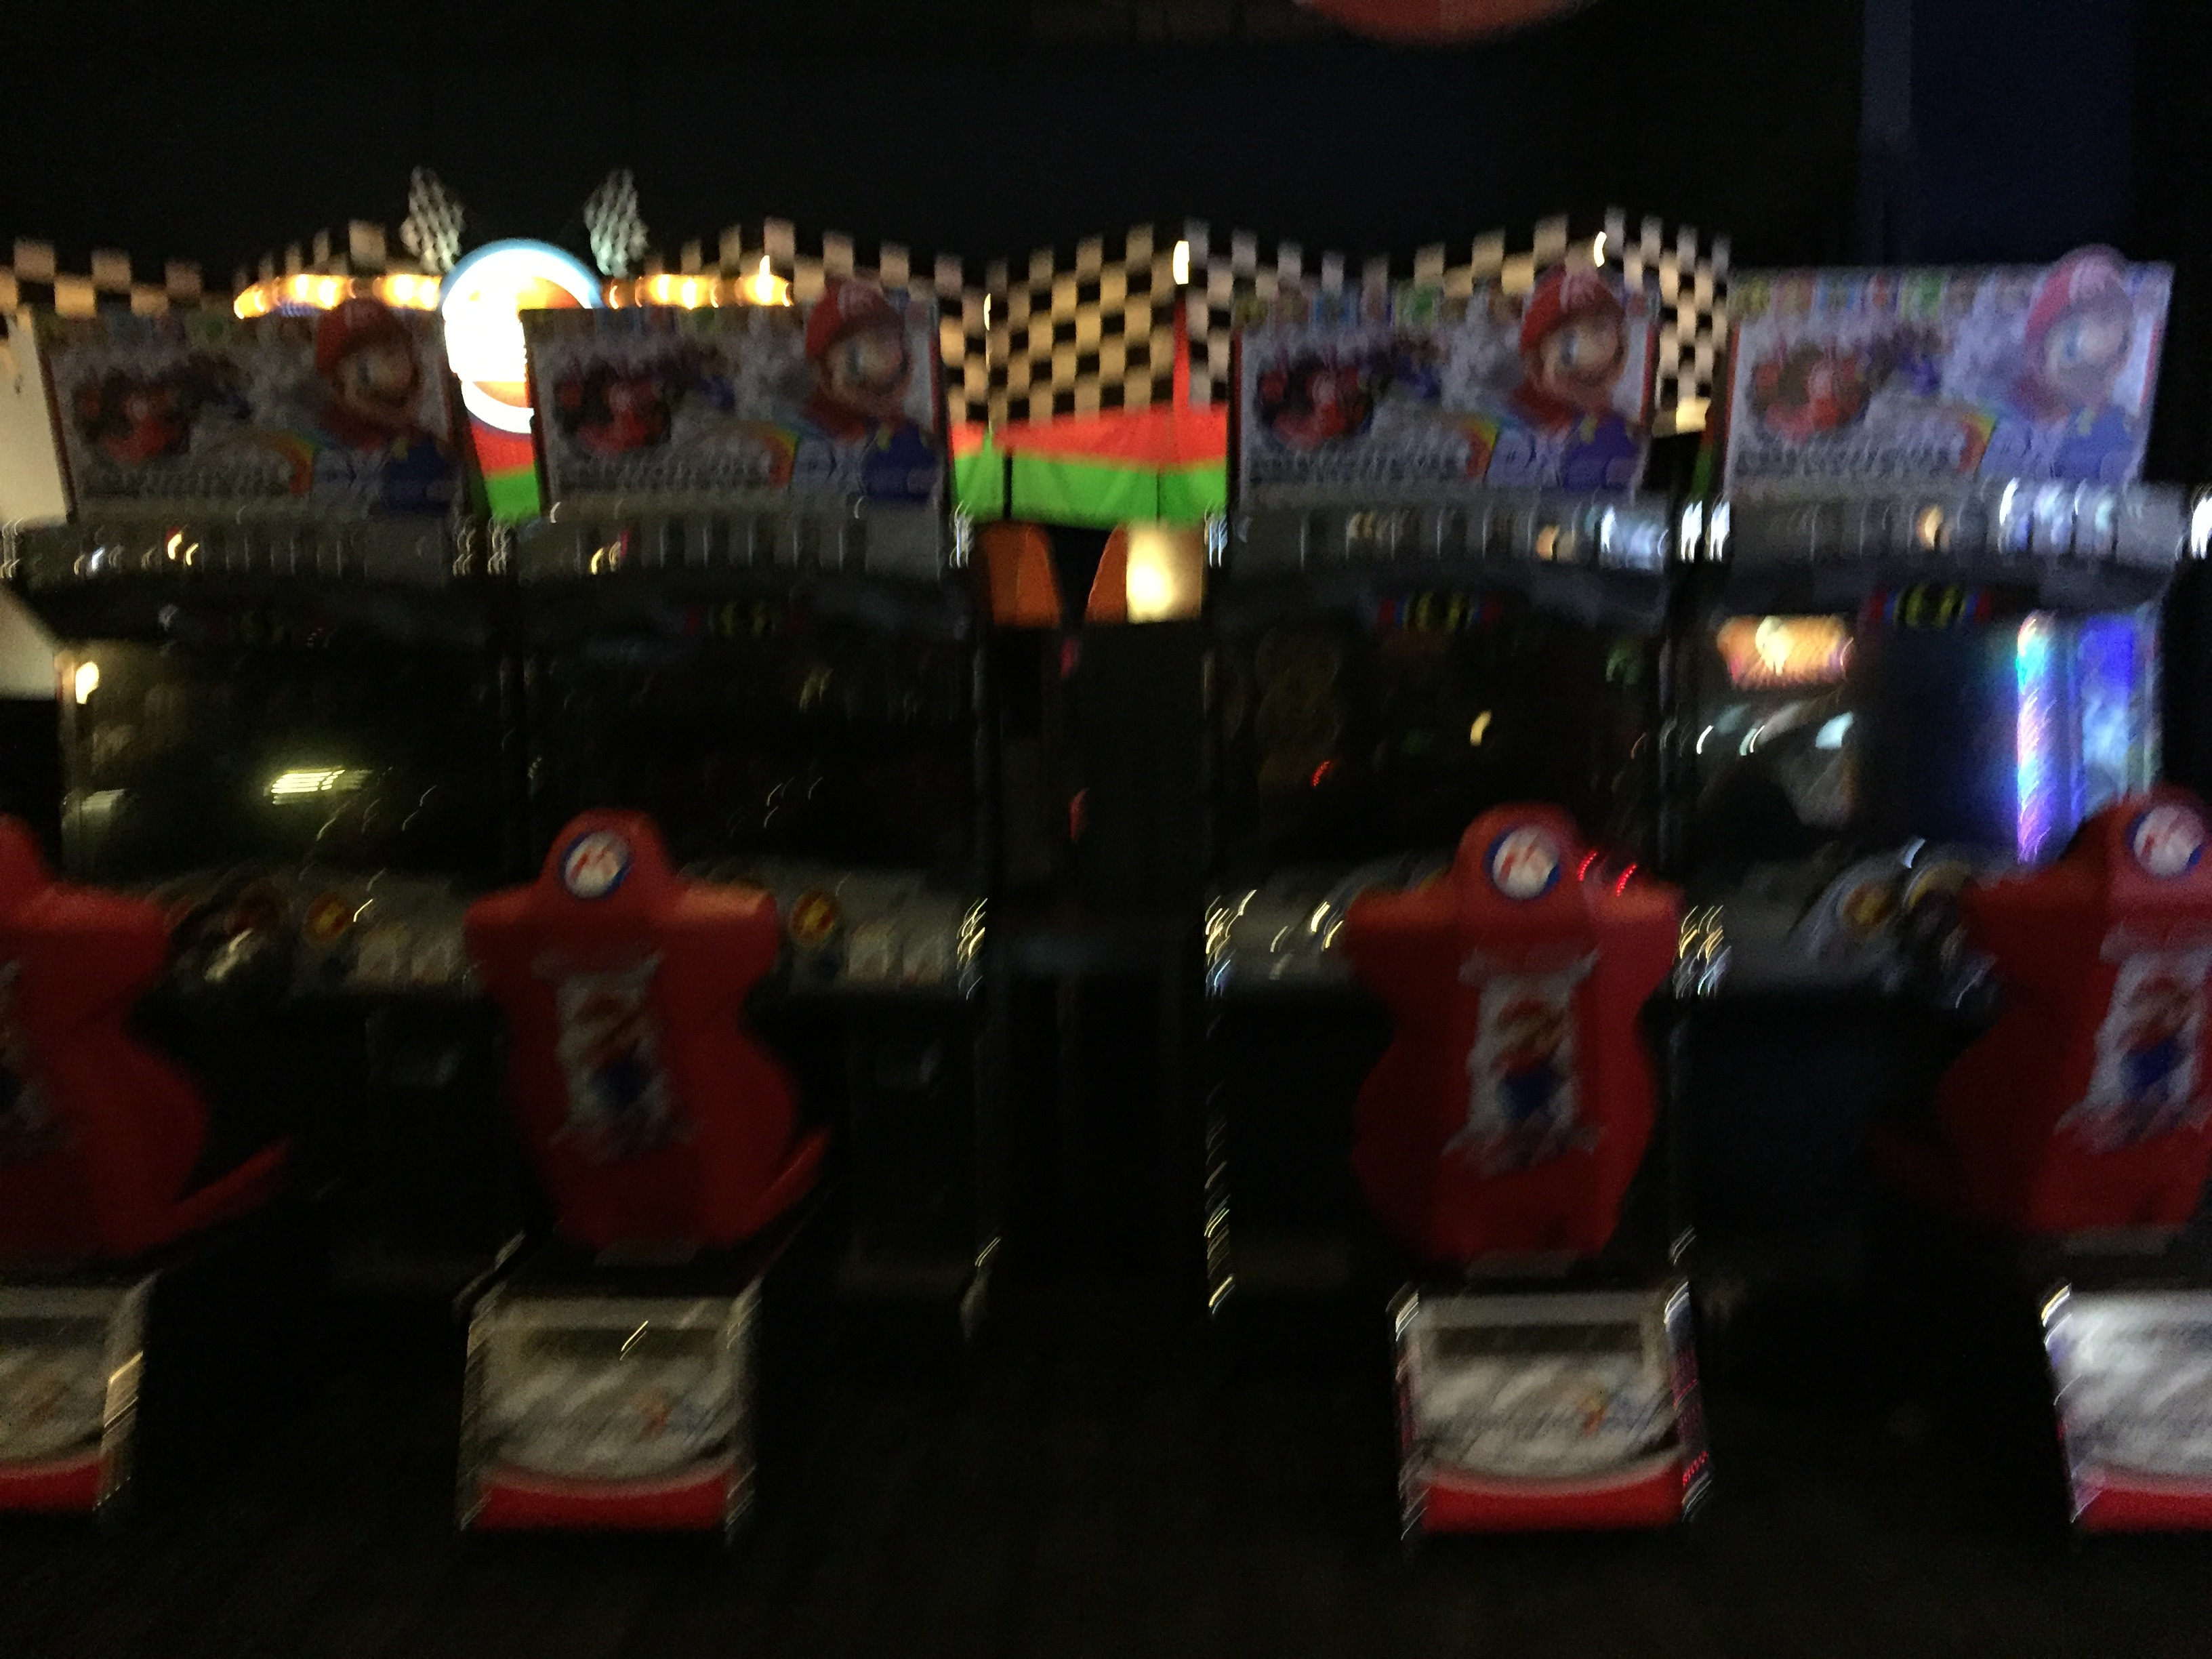 Mario Kart Arcade GP DX Dave & Buster's Orange 4